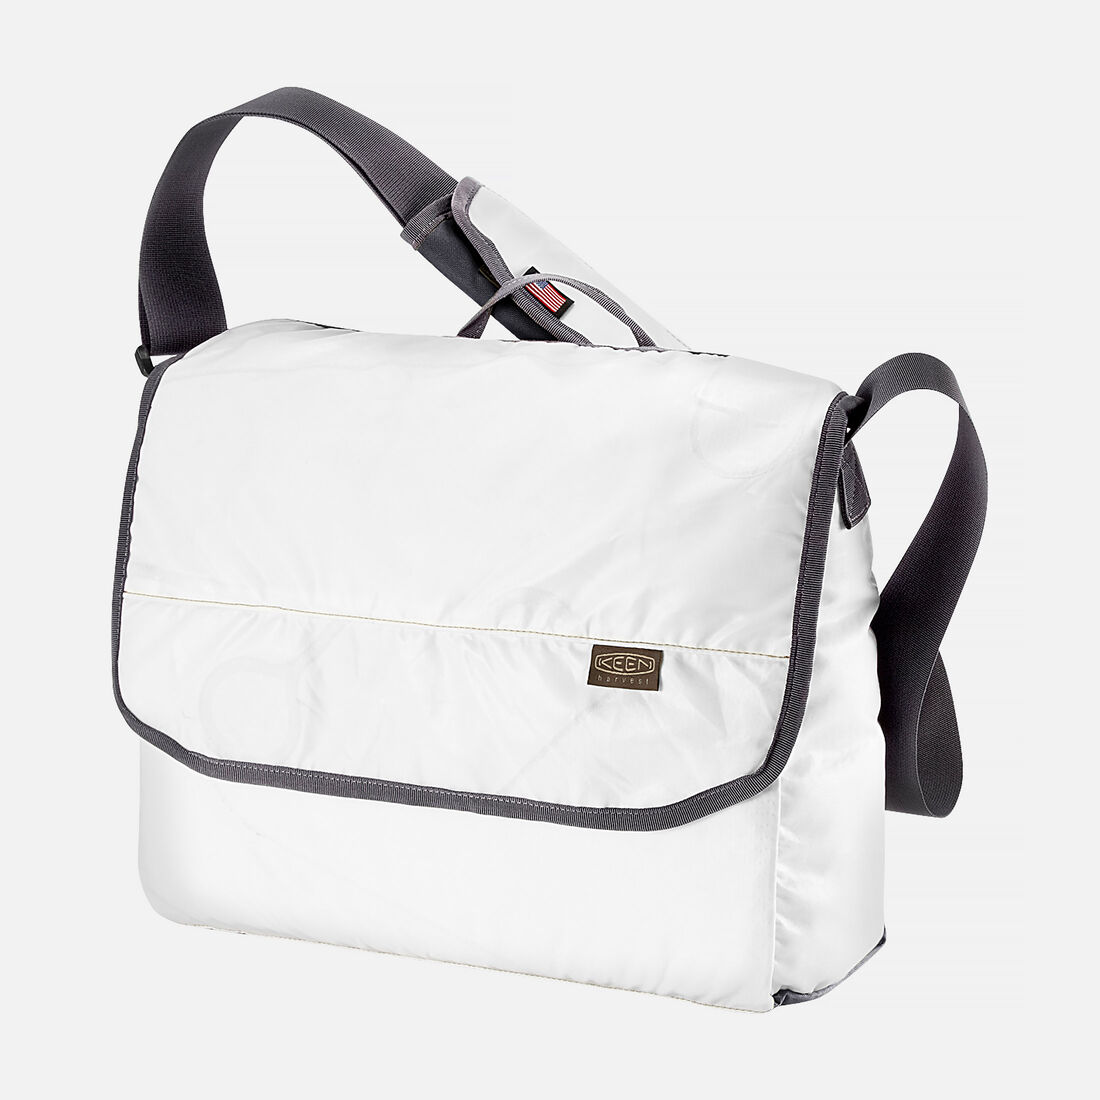 Keen Harvest Iii Messenger Bag In White Grey Large View